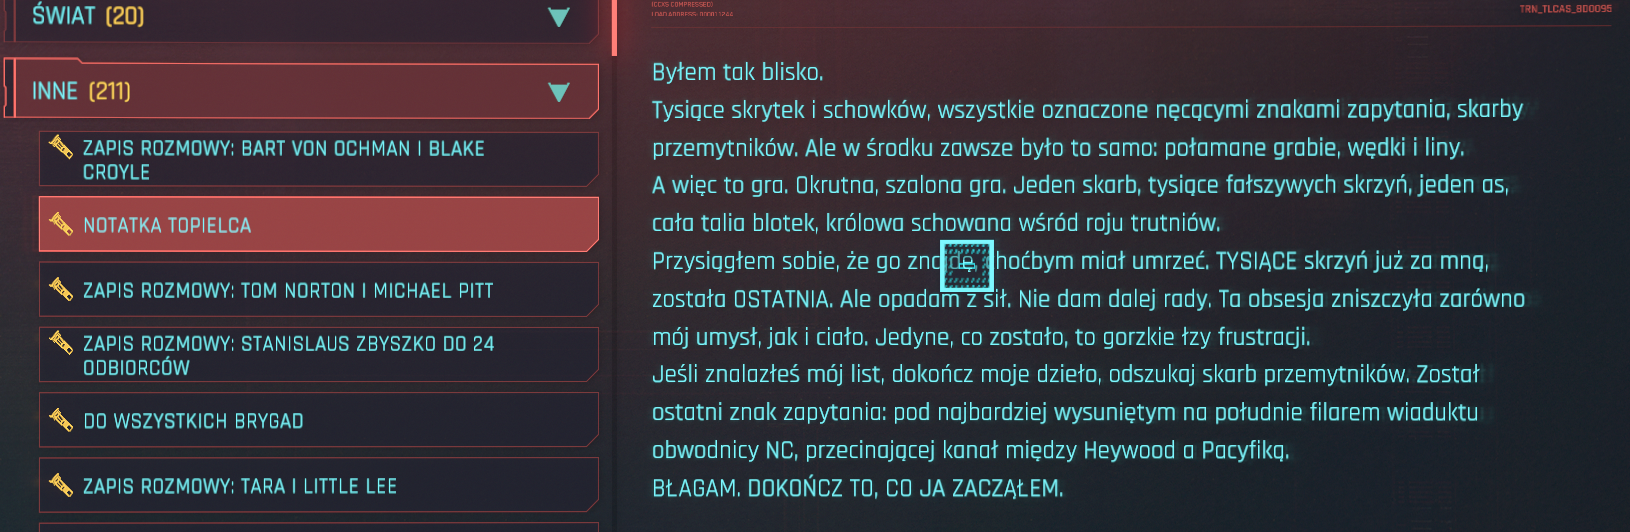 notka.png